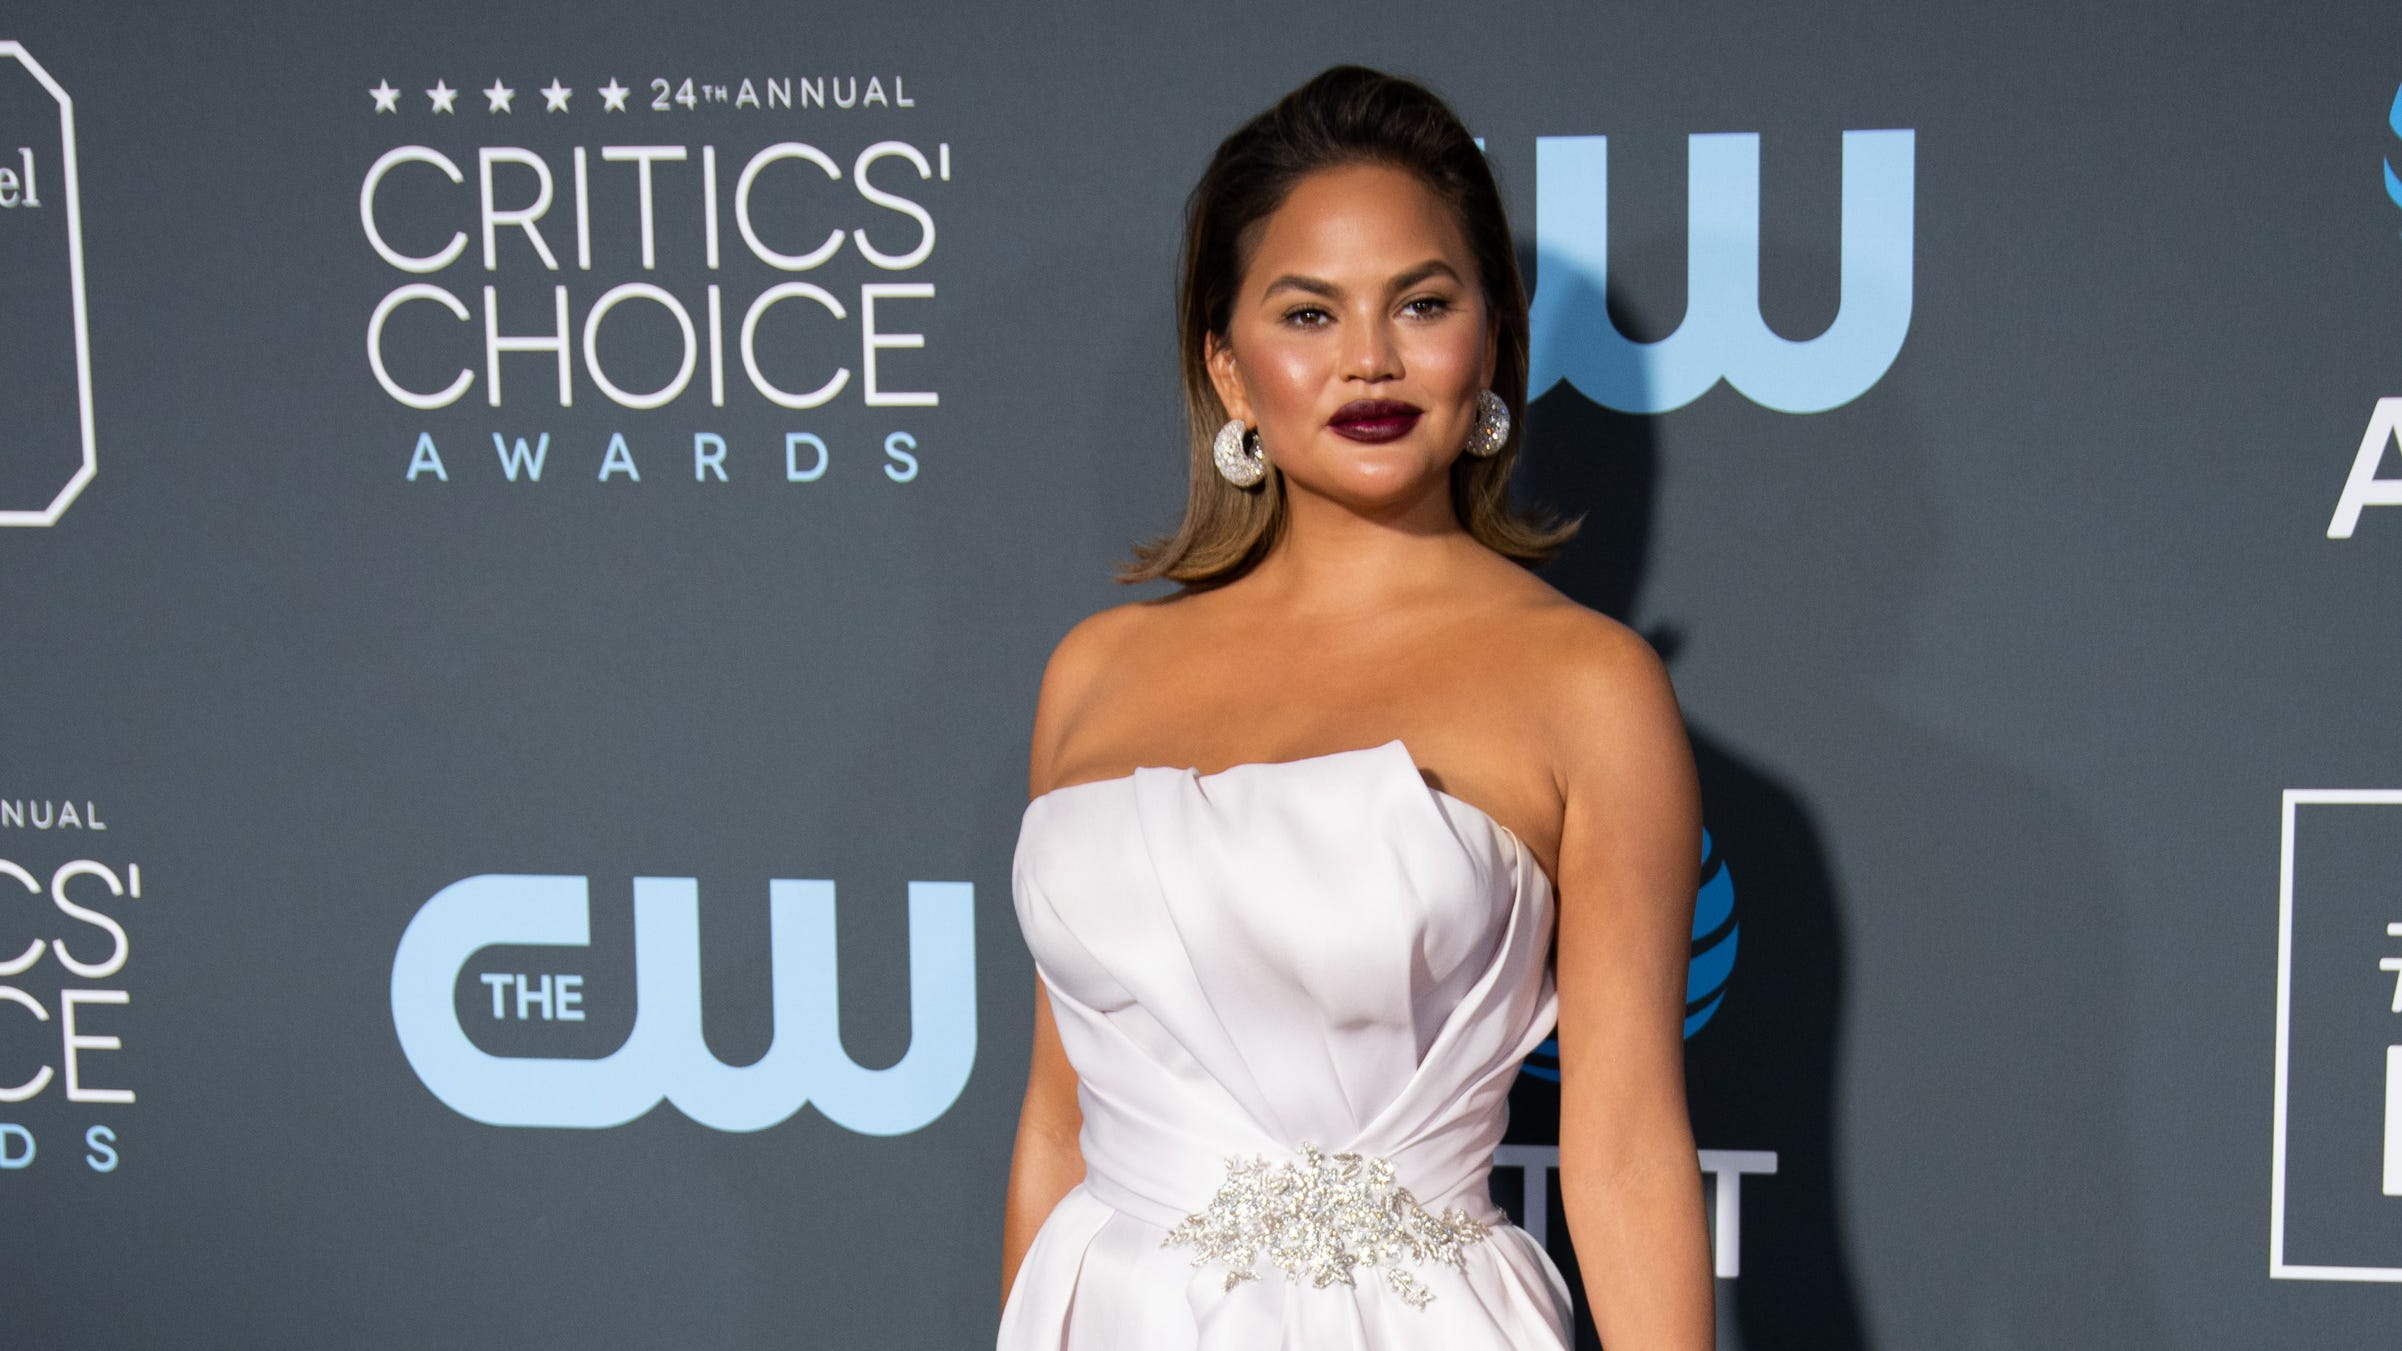 Chrissy Teigen says Luna and Miles helped her be 'very happy' with her body